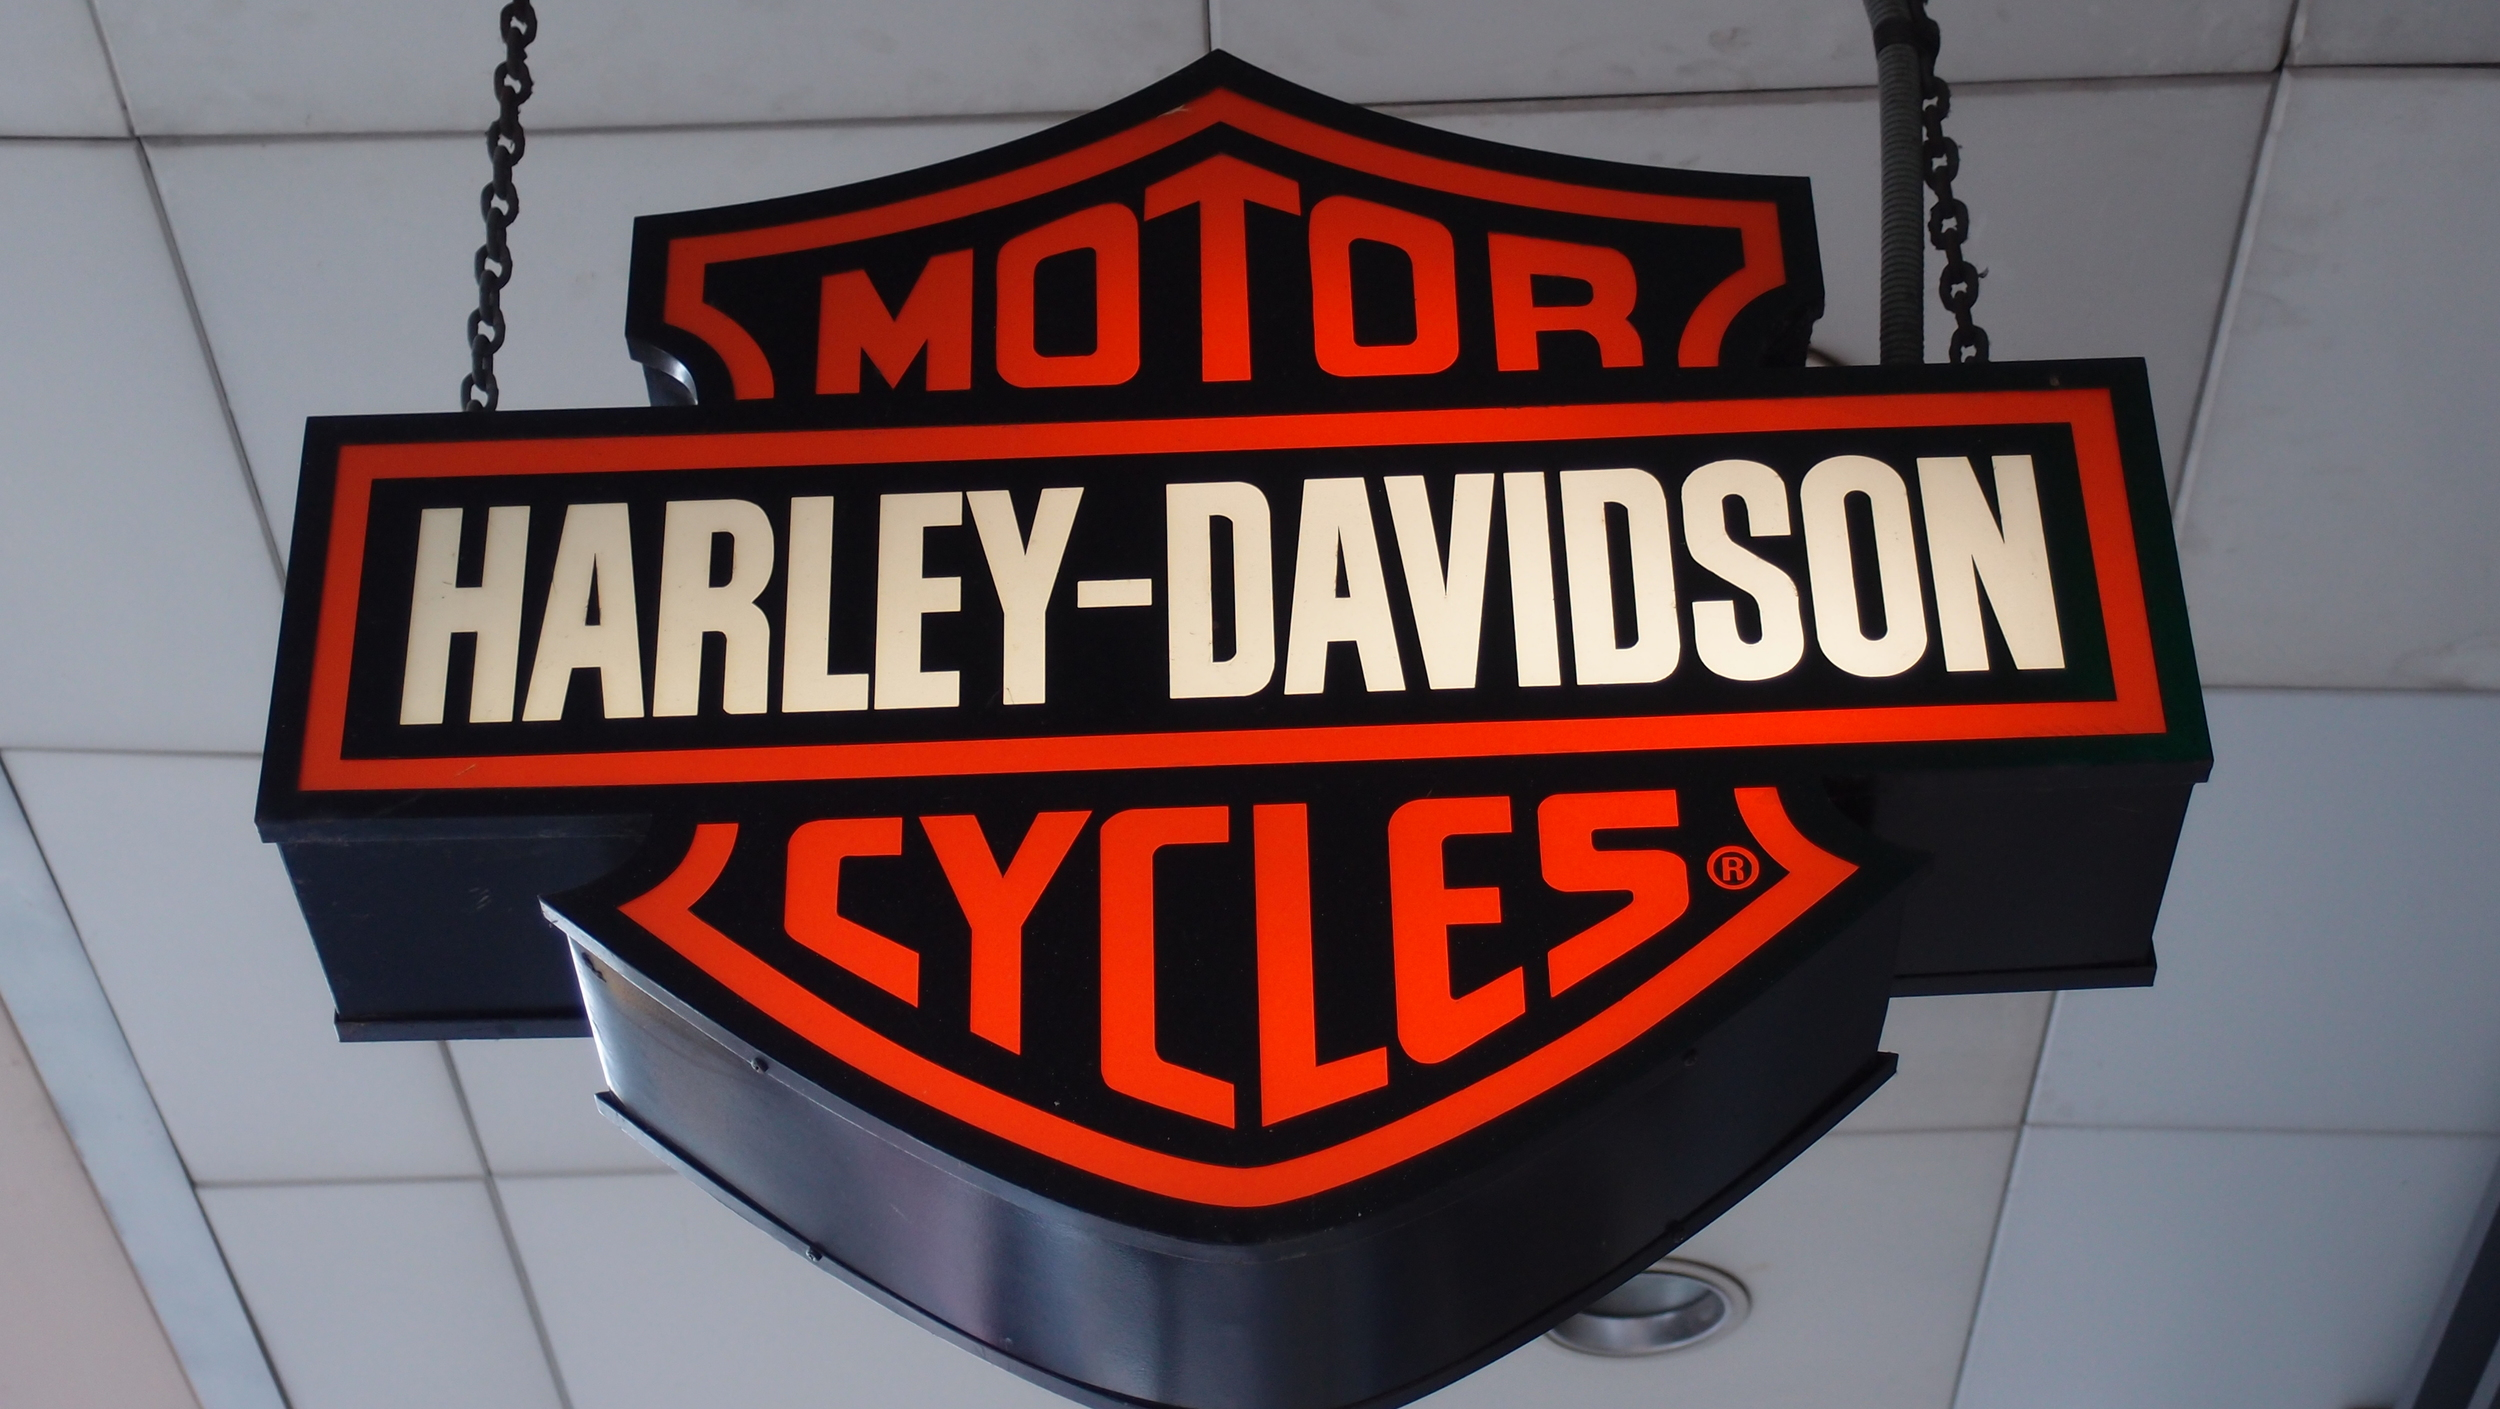 Bit of an iconic logo! Harley Davidson in Hong Kong